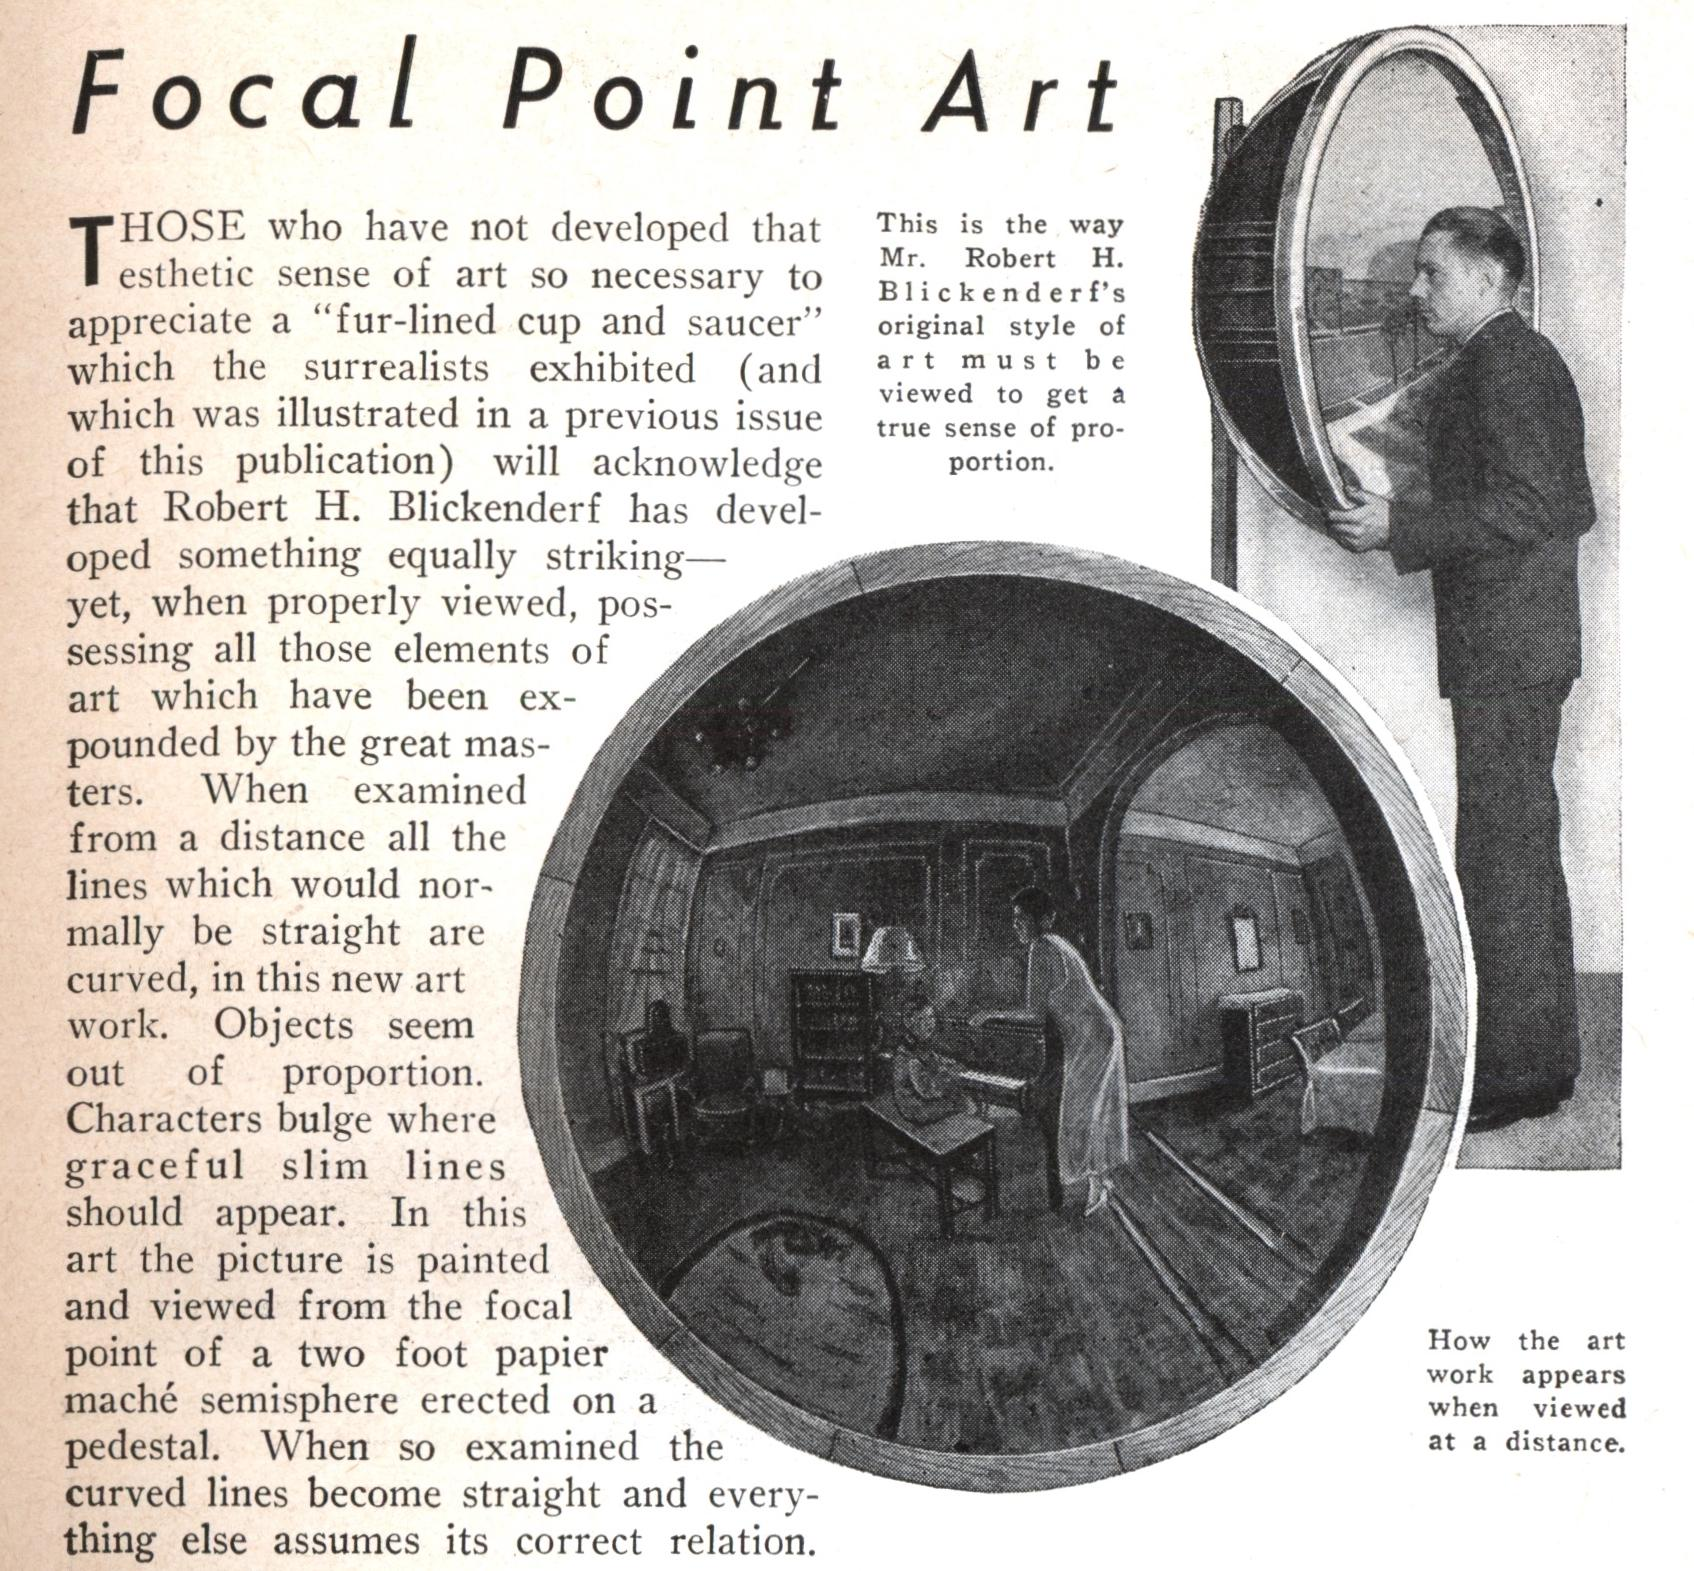 Focal Point Art | Modern Mechanix